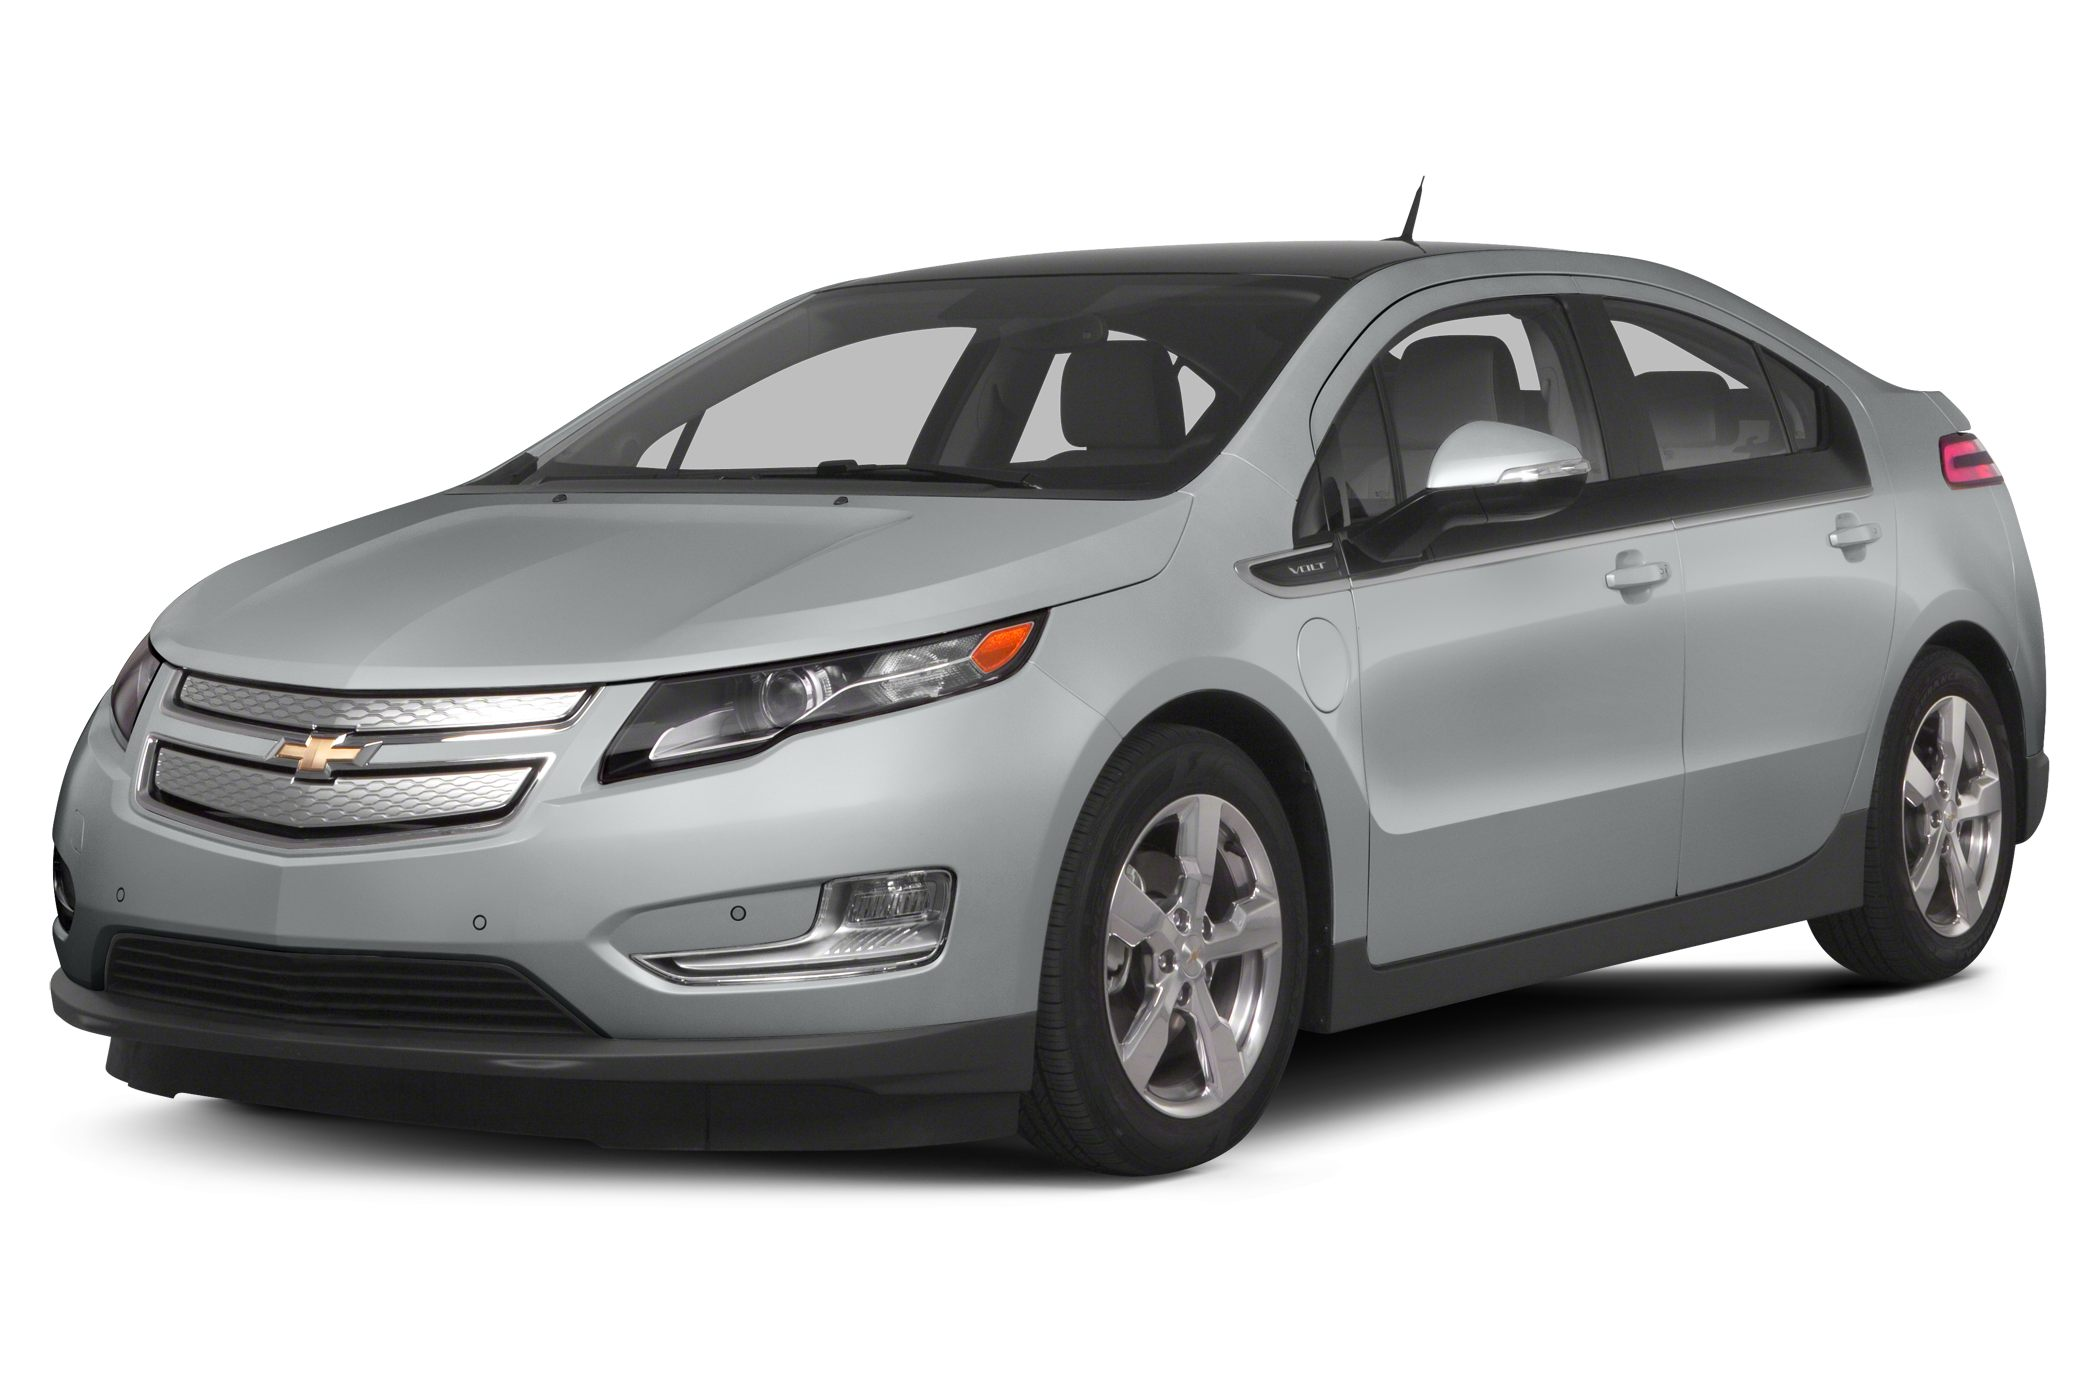 2014 Chevrolet Volt Base Hatchback for sale in San Jose for $32,500 with 2,727 miles.